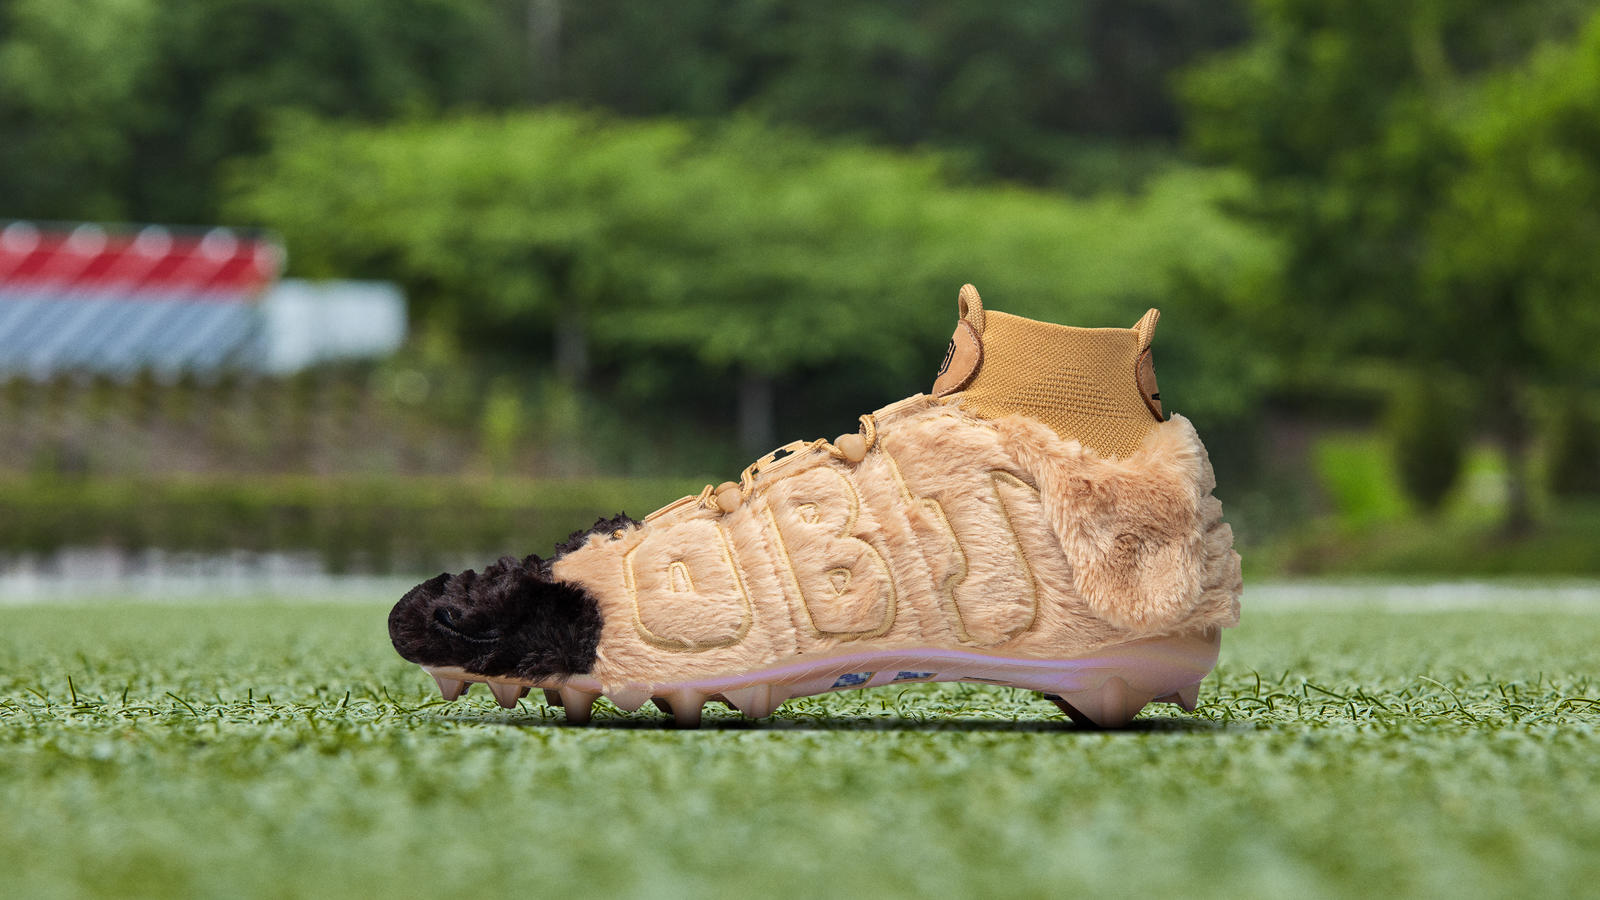 nike-odell-beckham-jr.-pregame-cleats-2019-season-week-14